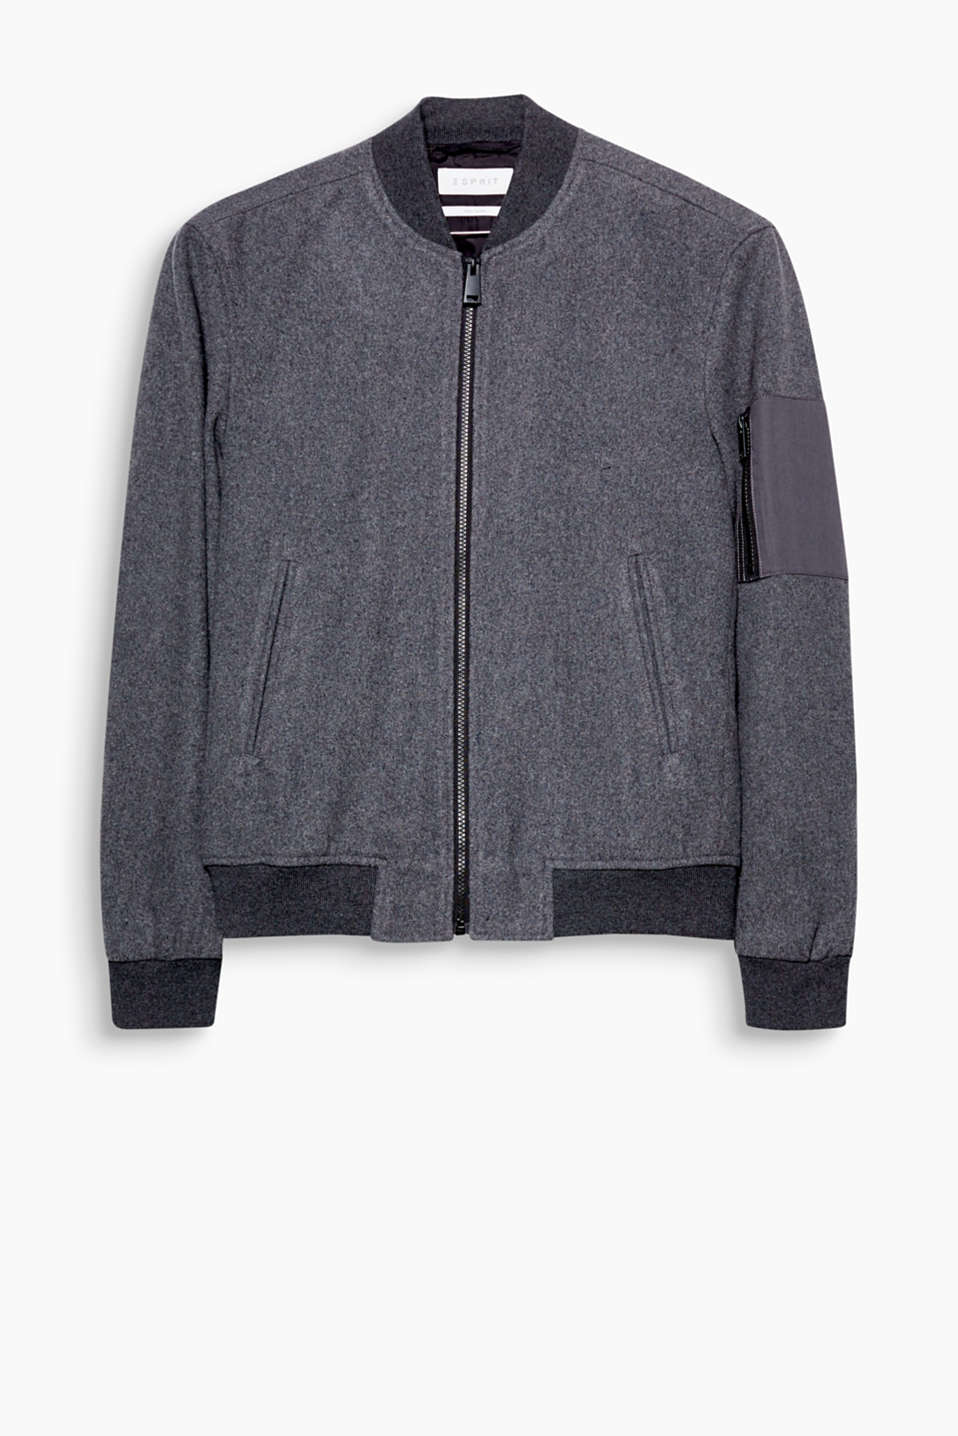 An urban classic! Sporty bomber jacket in a high-quality wool blend